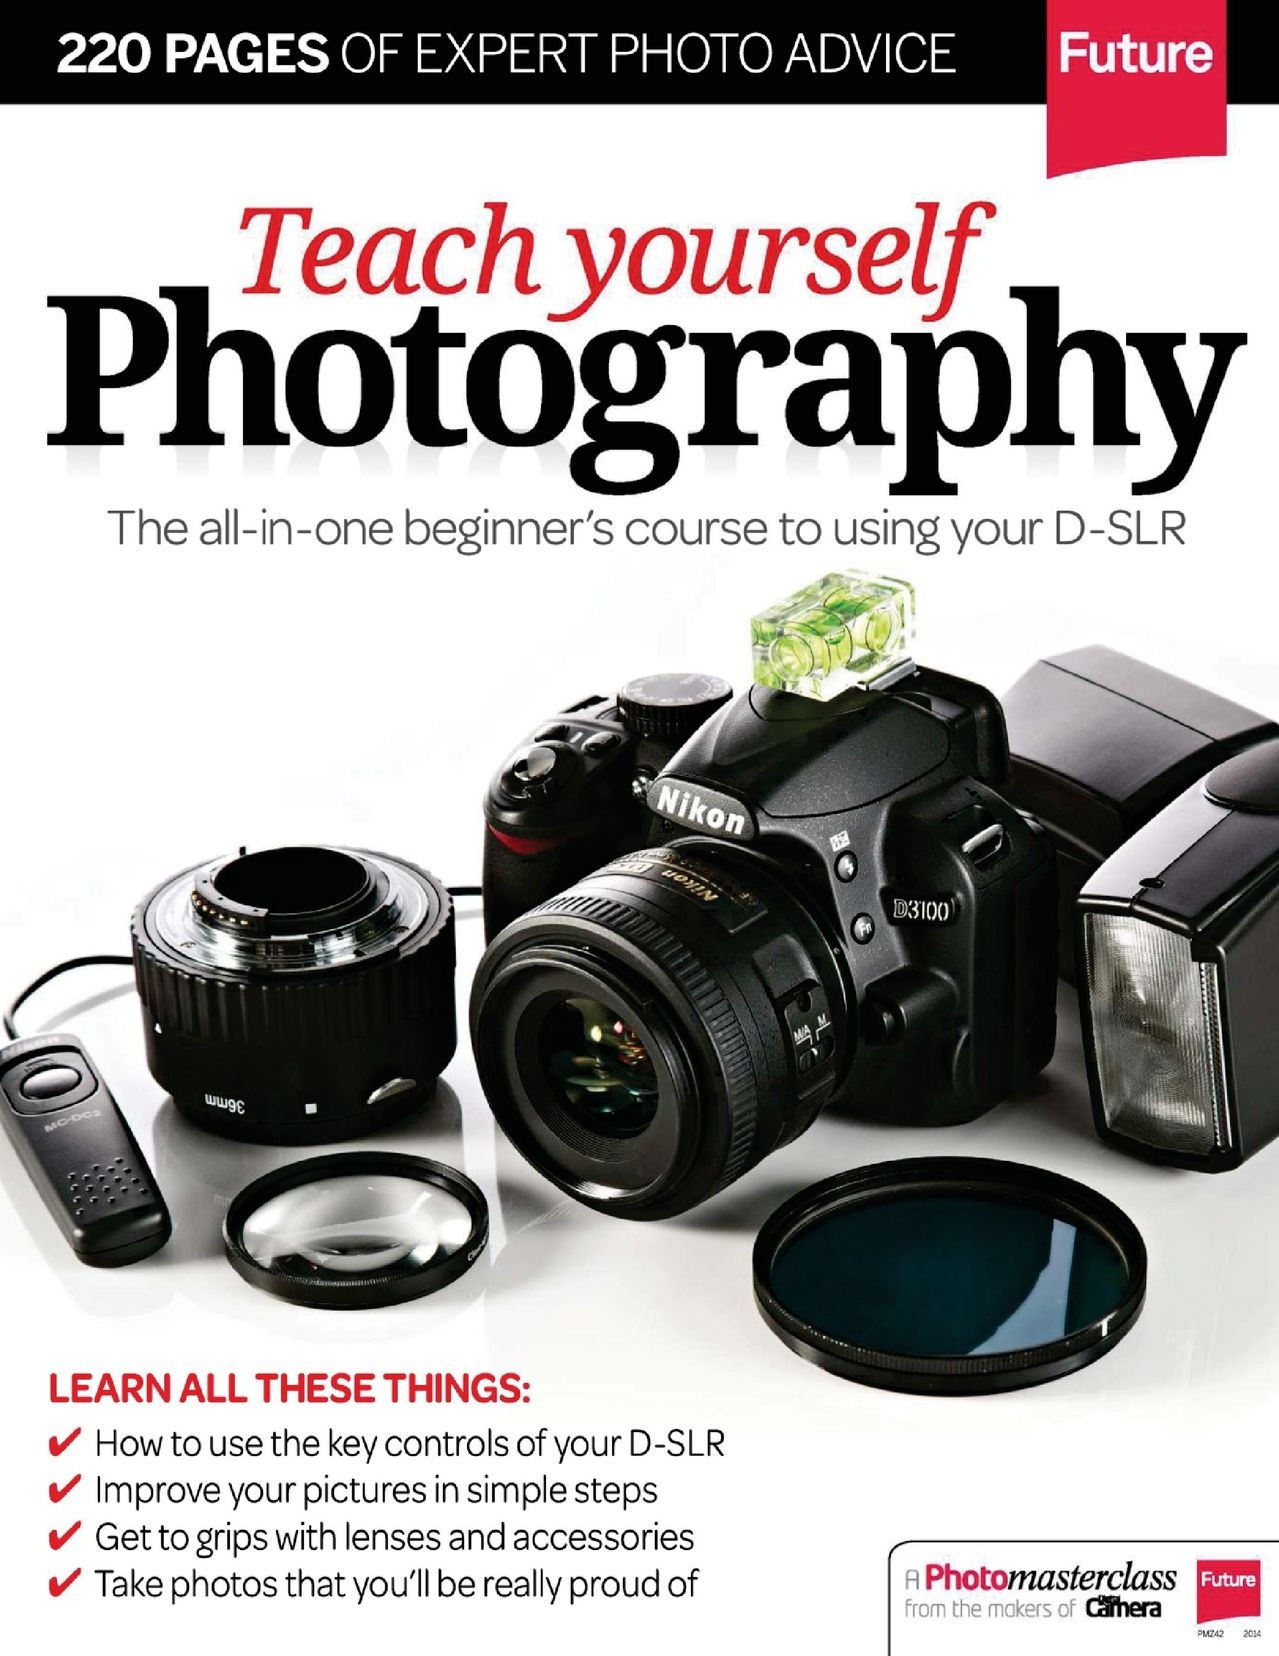 Teach Yourself Photography - 2014 free download